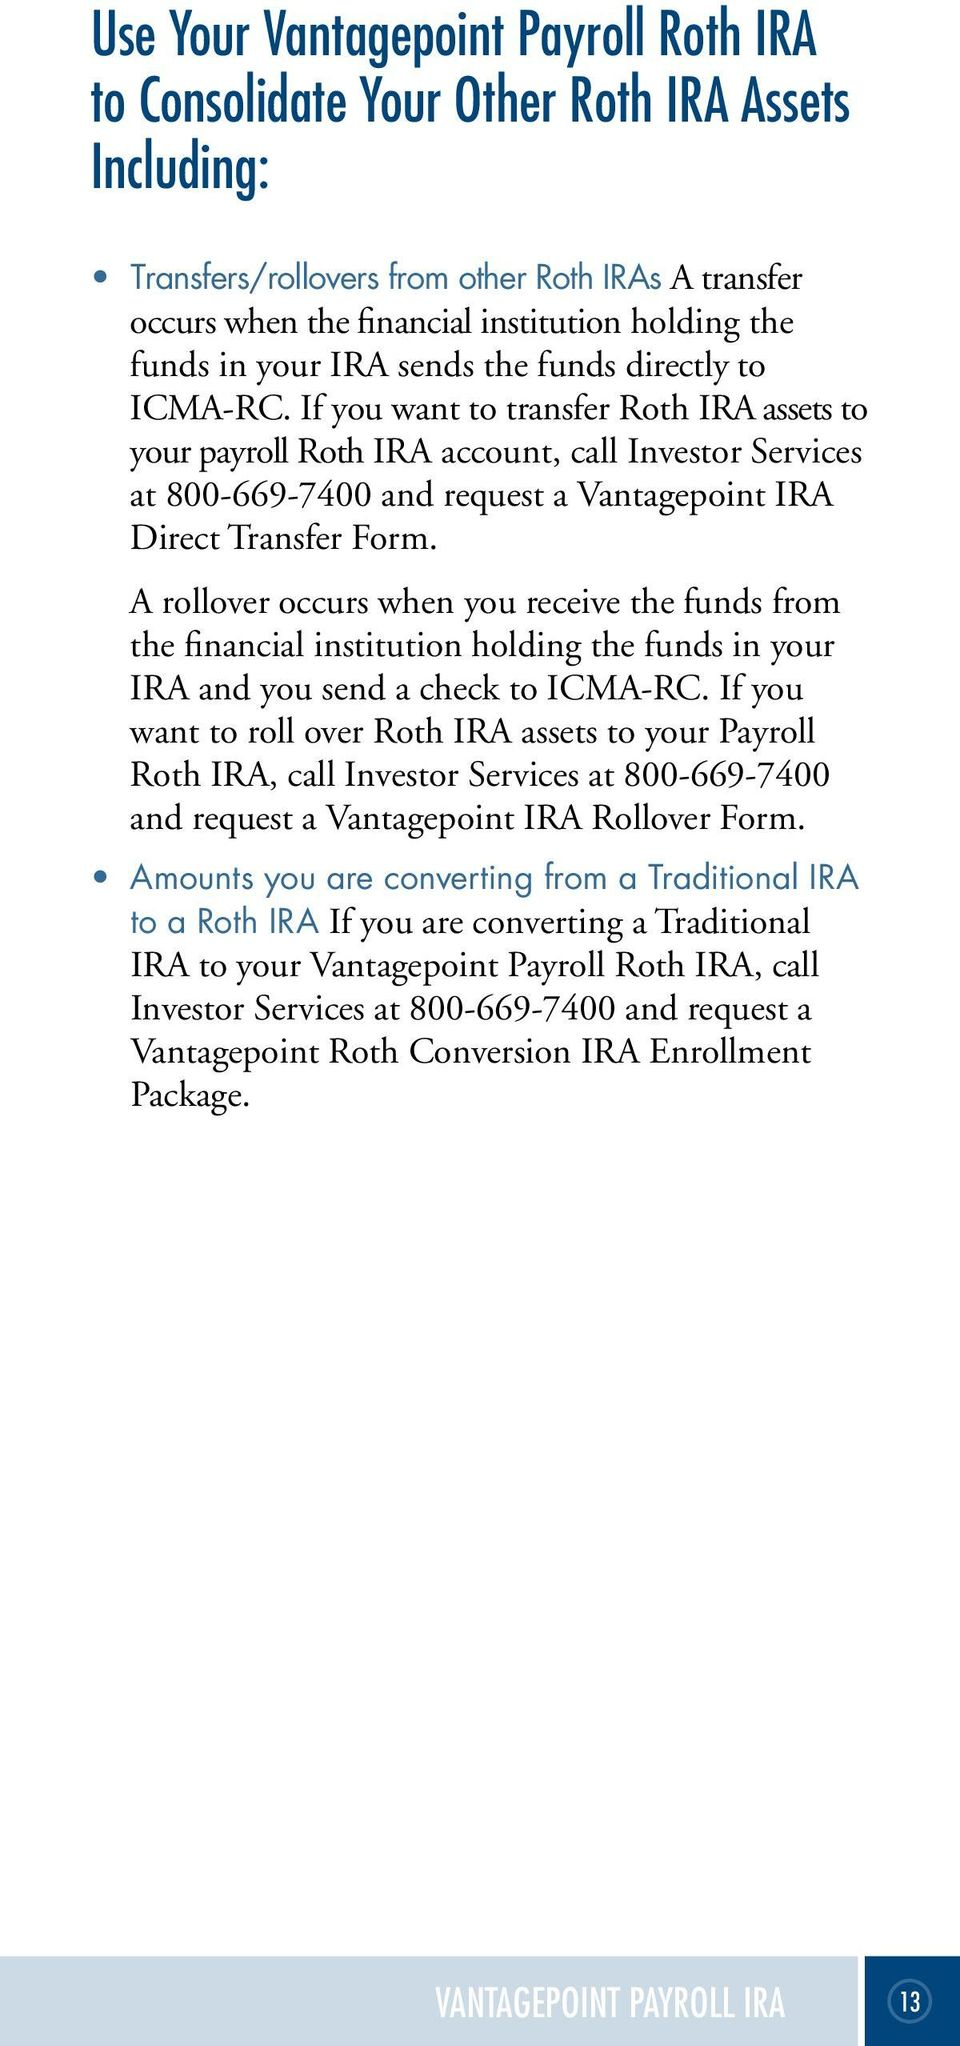 If you want to transfer Roth IRA assets to your payroll Roth IRA account, call Investor Services at 800-669-7400 and request a Vantagepoint IRA Direct Transfer Form.